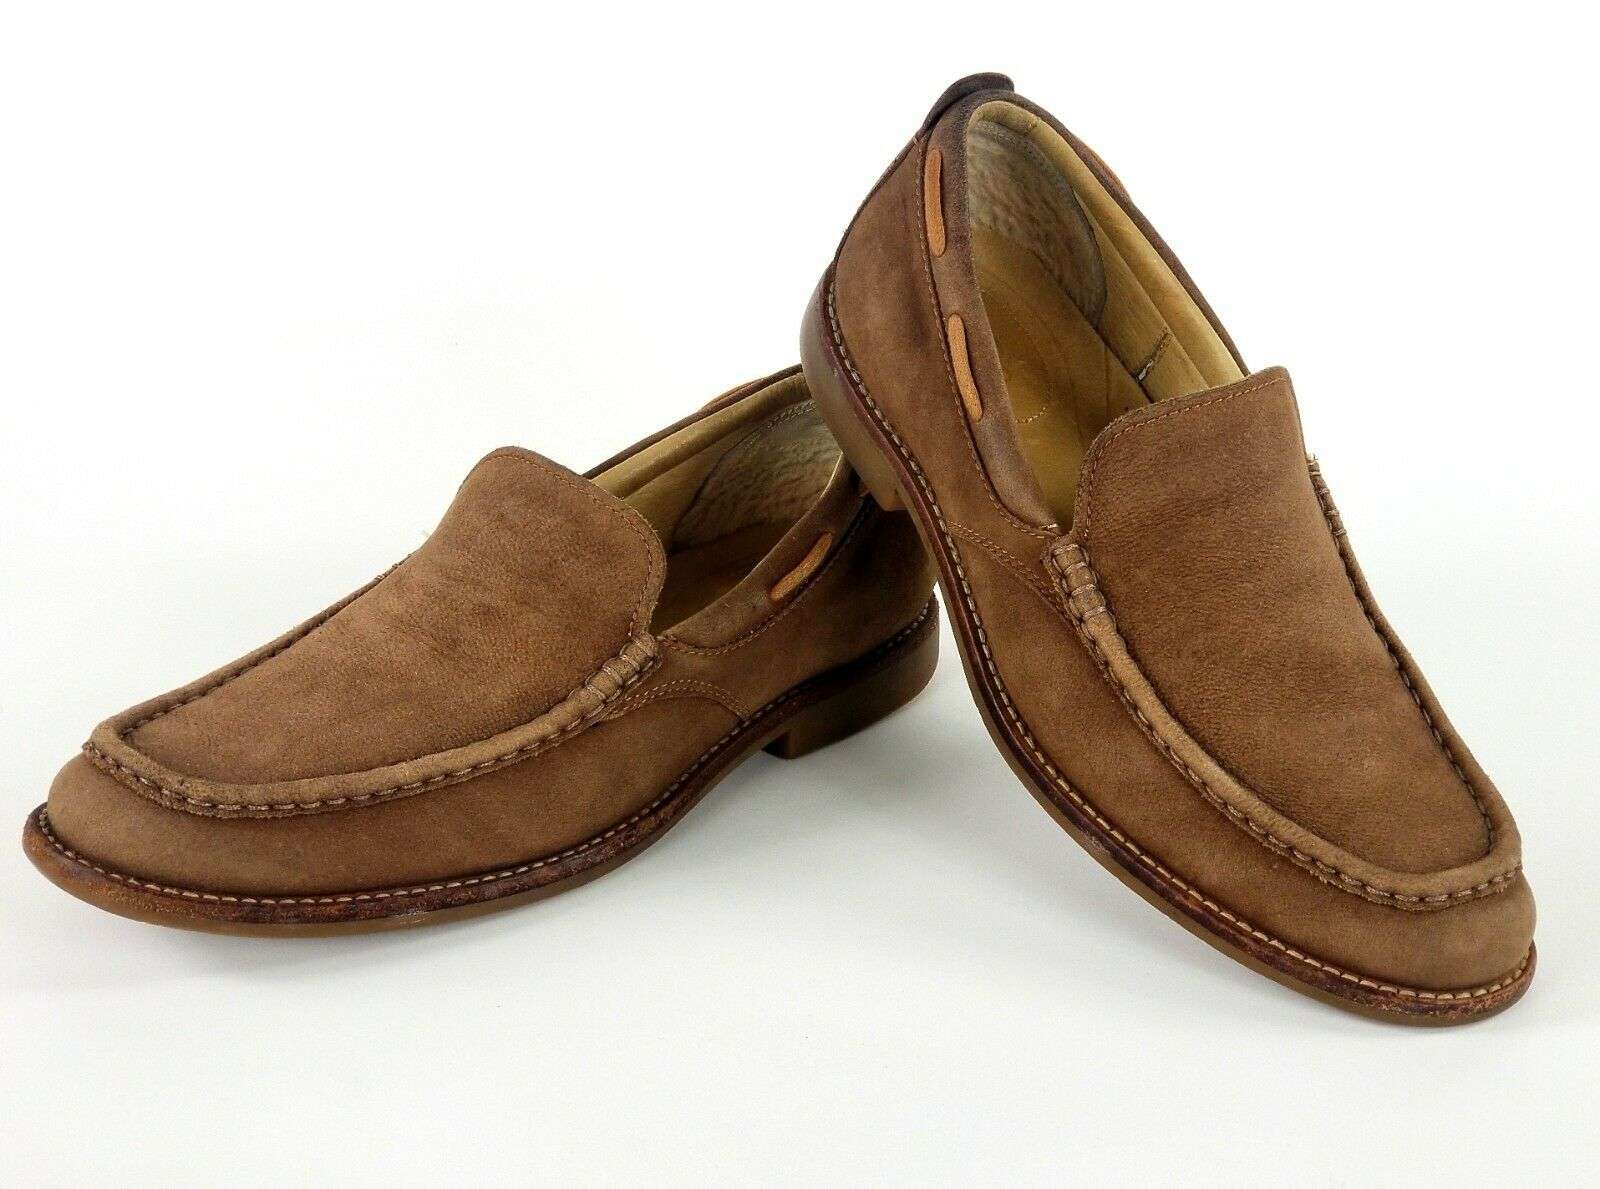 UGG Australia Sam Leather Driving Loafers Mens 11 brown slip on shoes RARE!